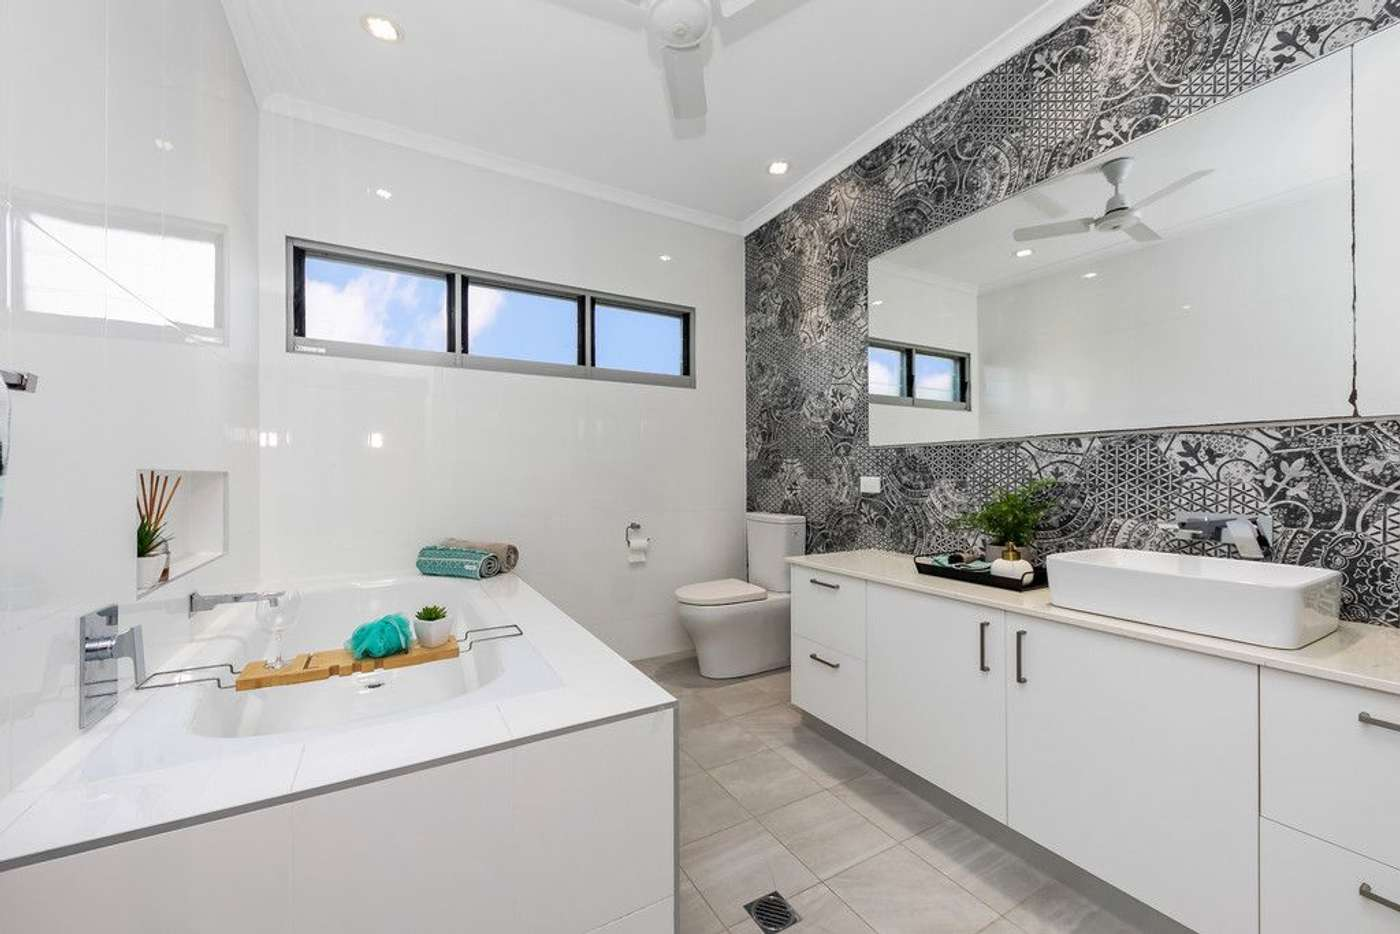 Fifth view of Homely house listing, 48 Blackburn Street, Muirhead NT 810